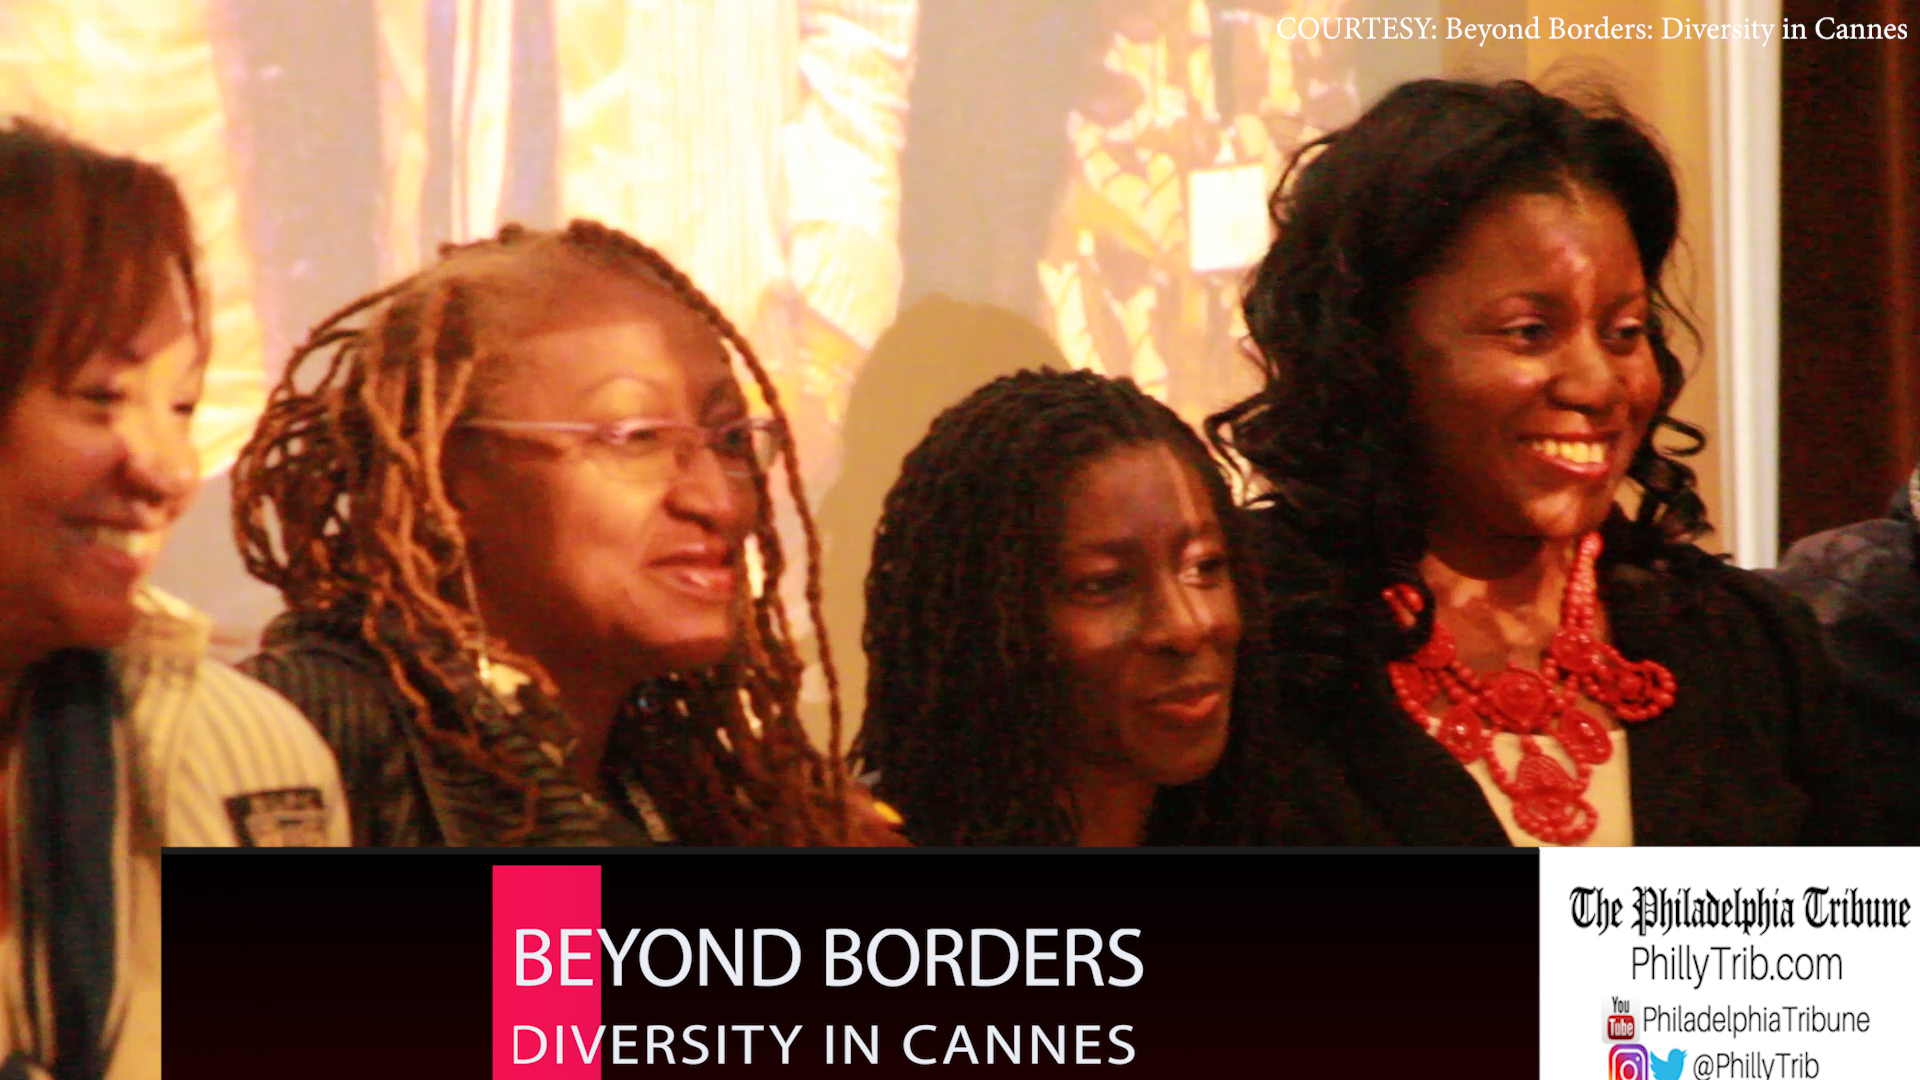 05/21/18 : Beyond Borders: Diversity in Cannes